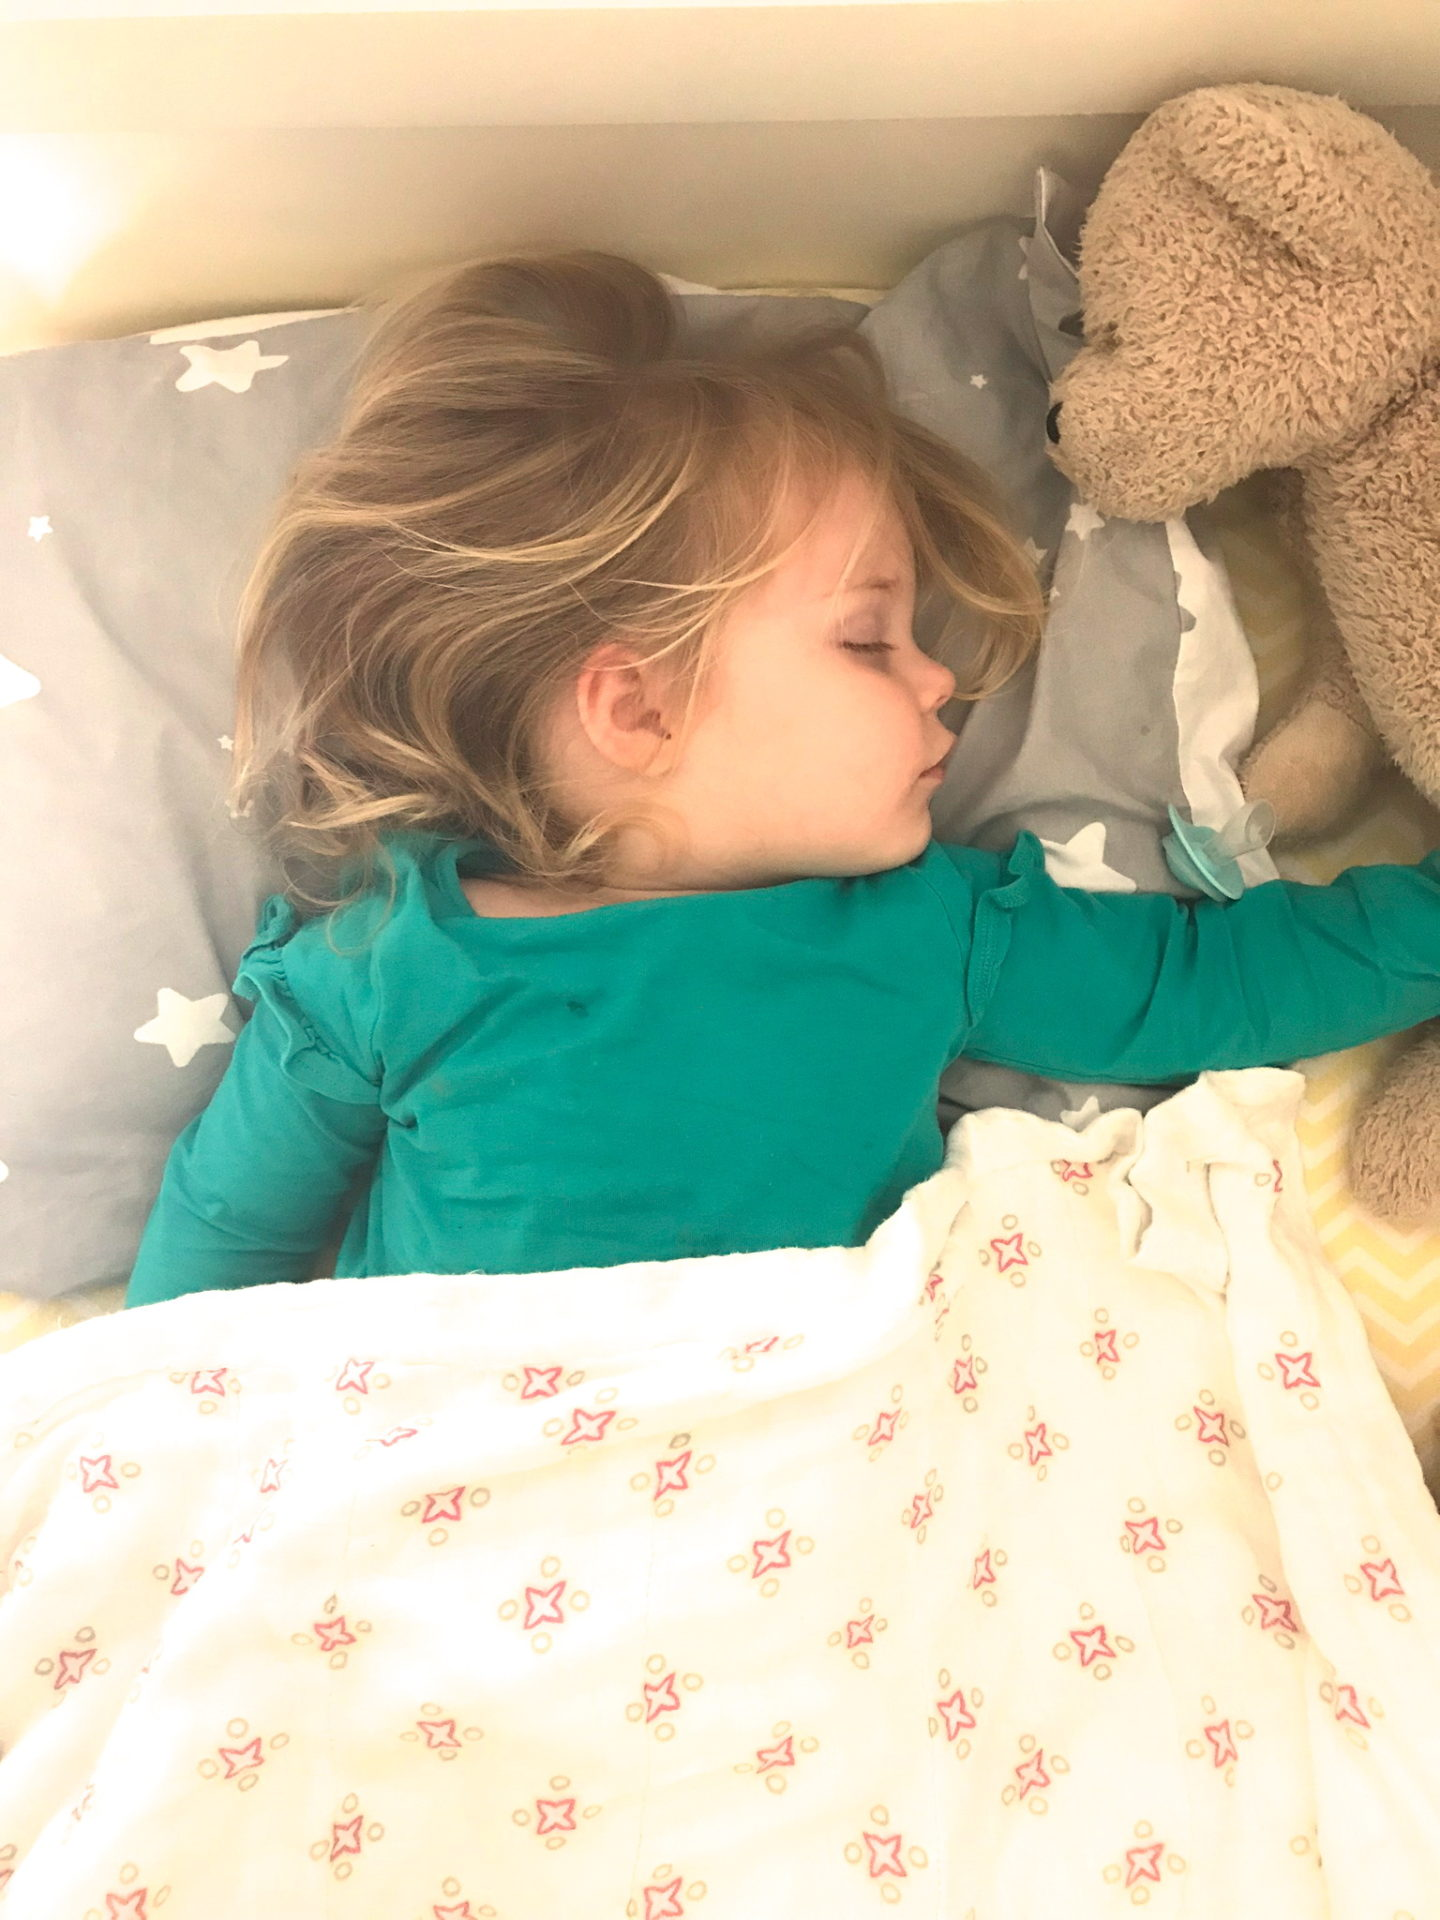 Two year old sleeping in bed with teddy